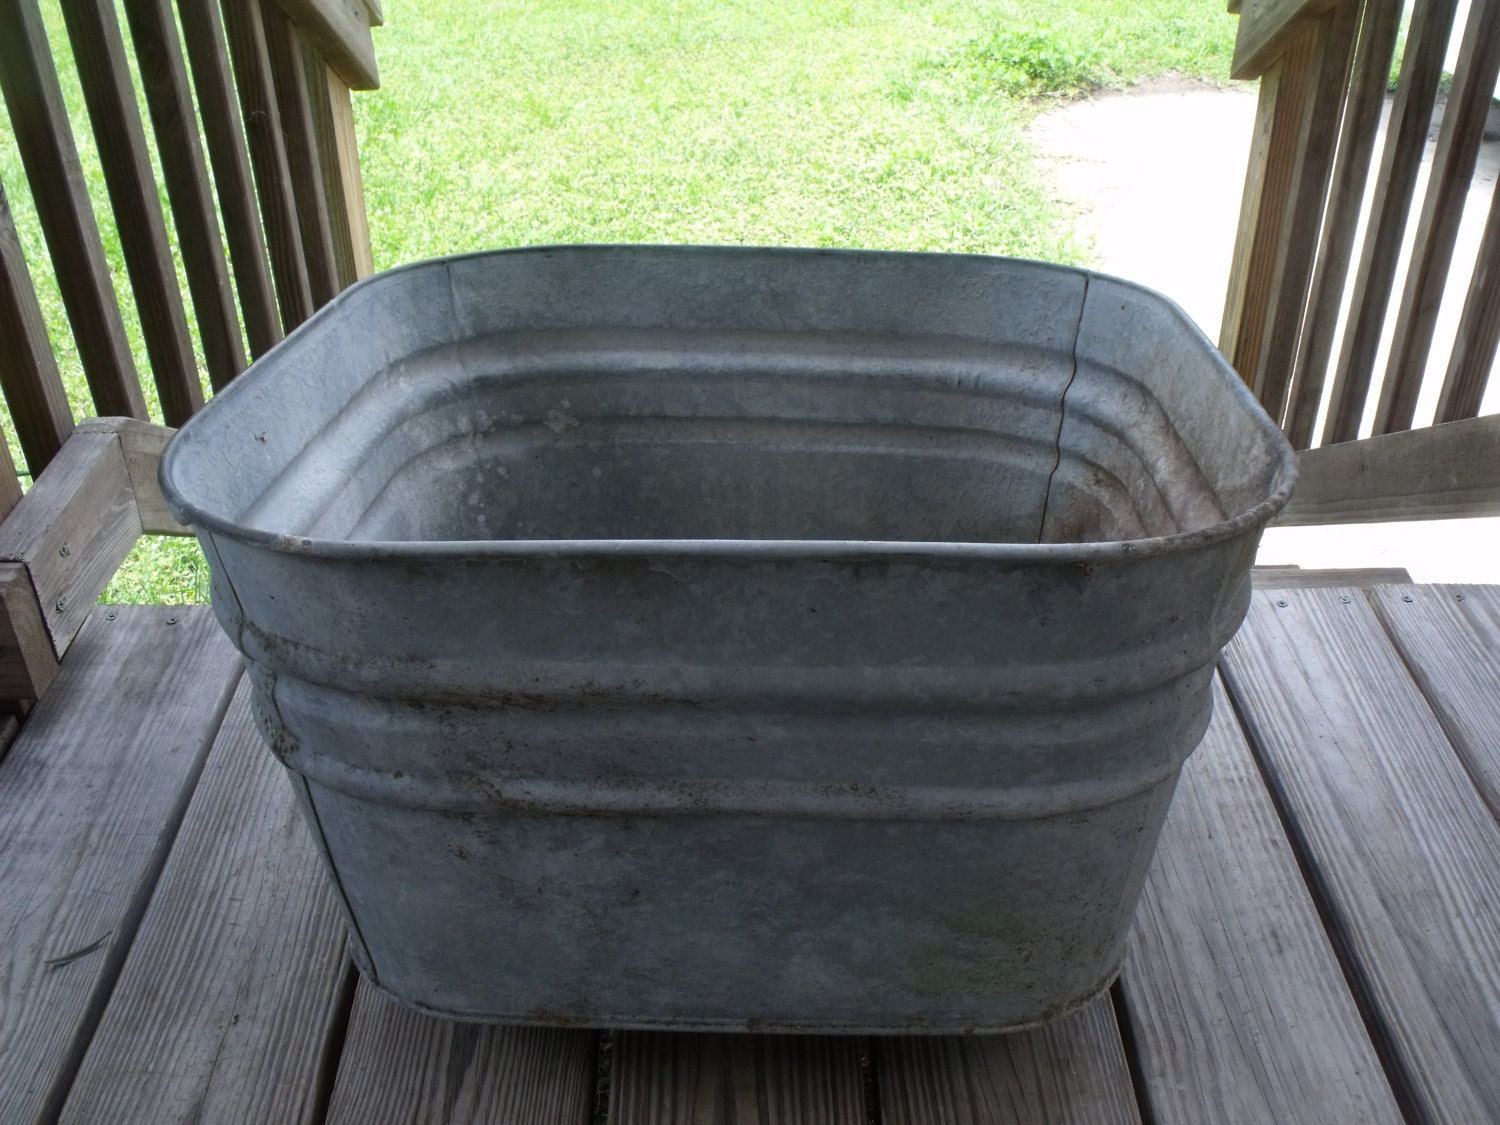 Vintage galvanized steel rub a dub tub wash basin sink for Galvanized tub kitchen sink